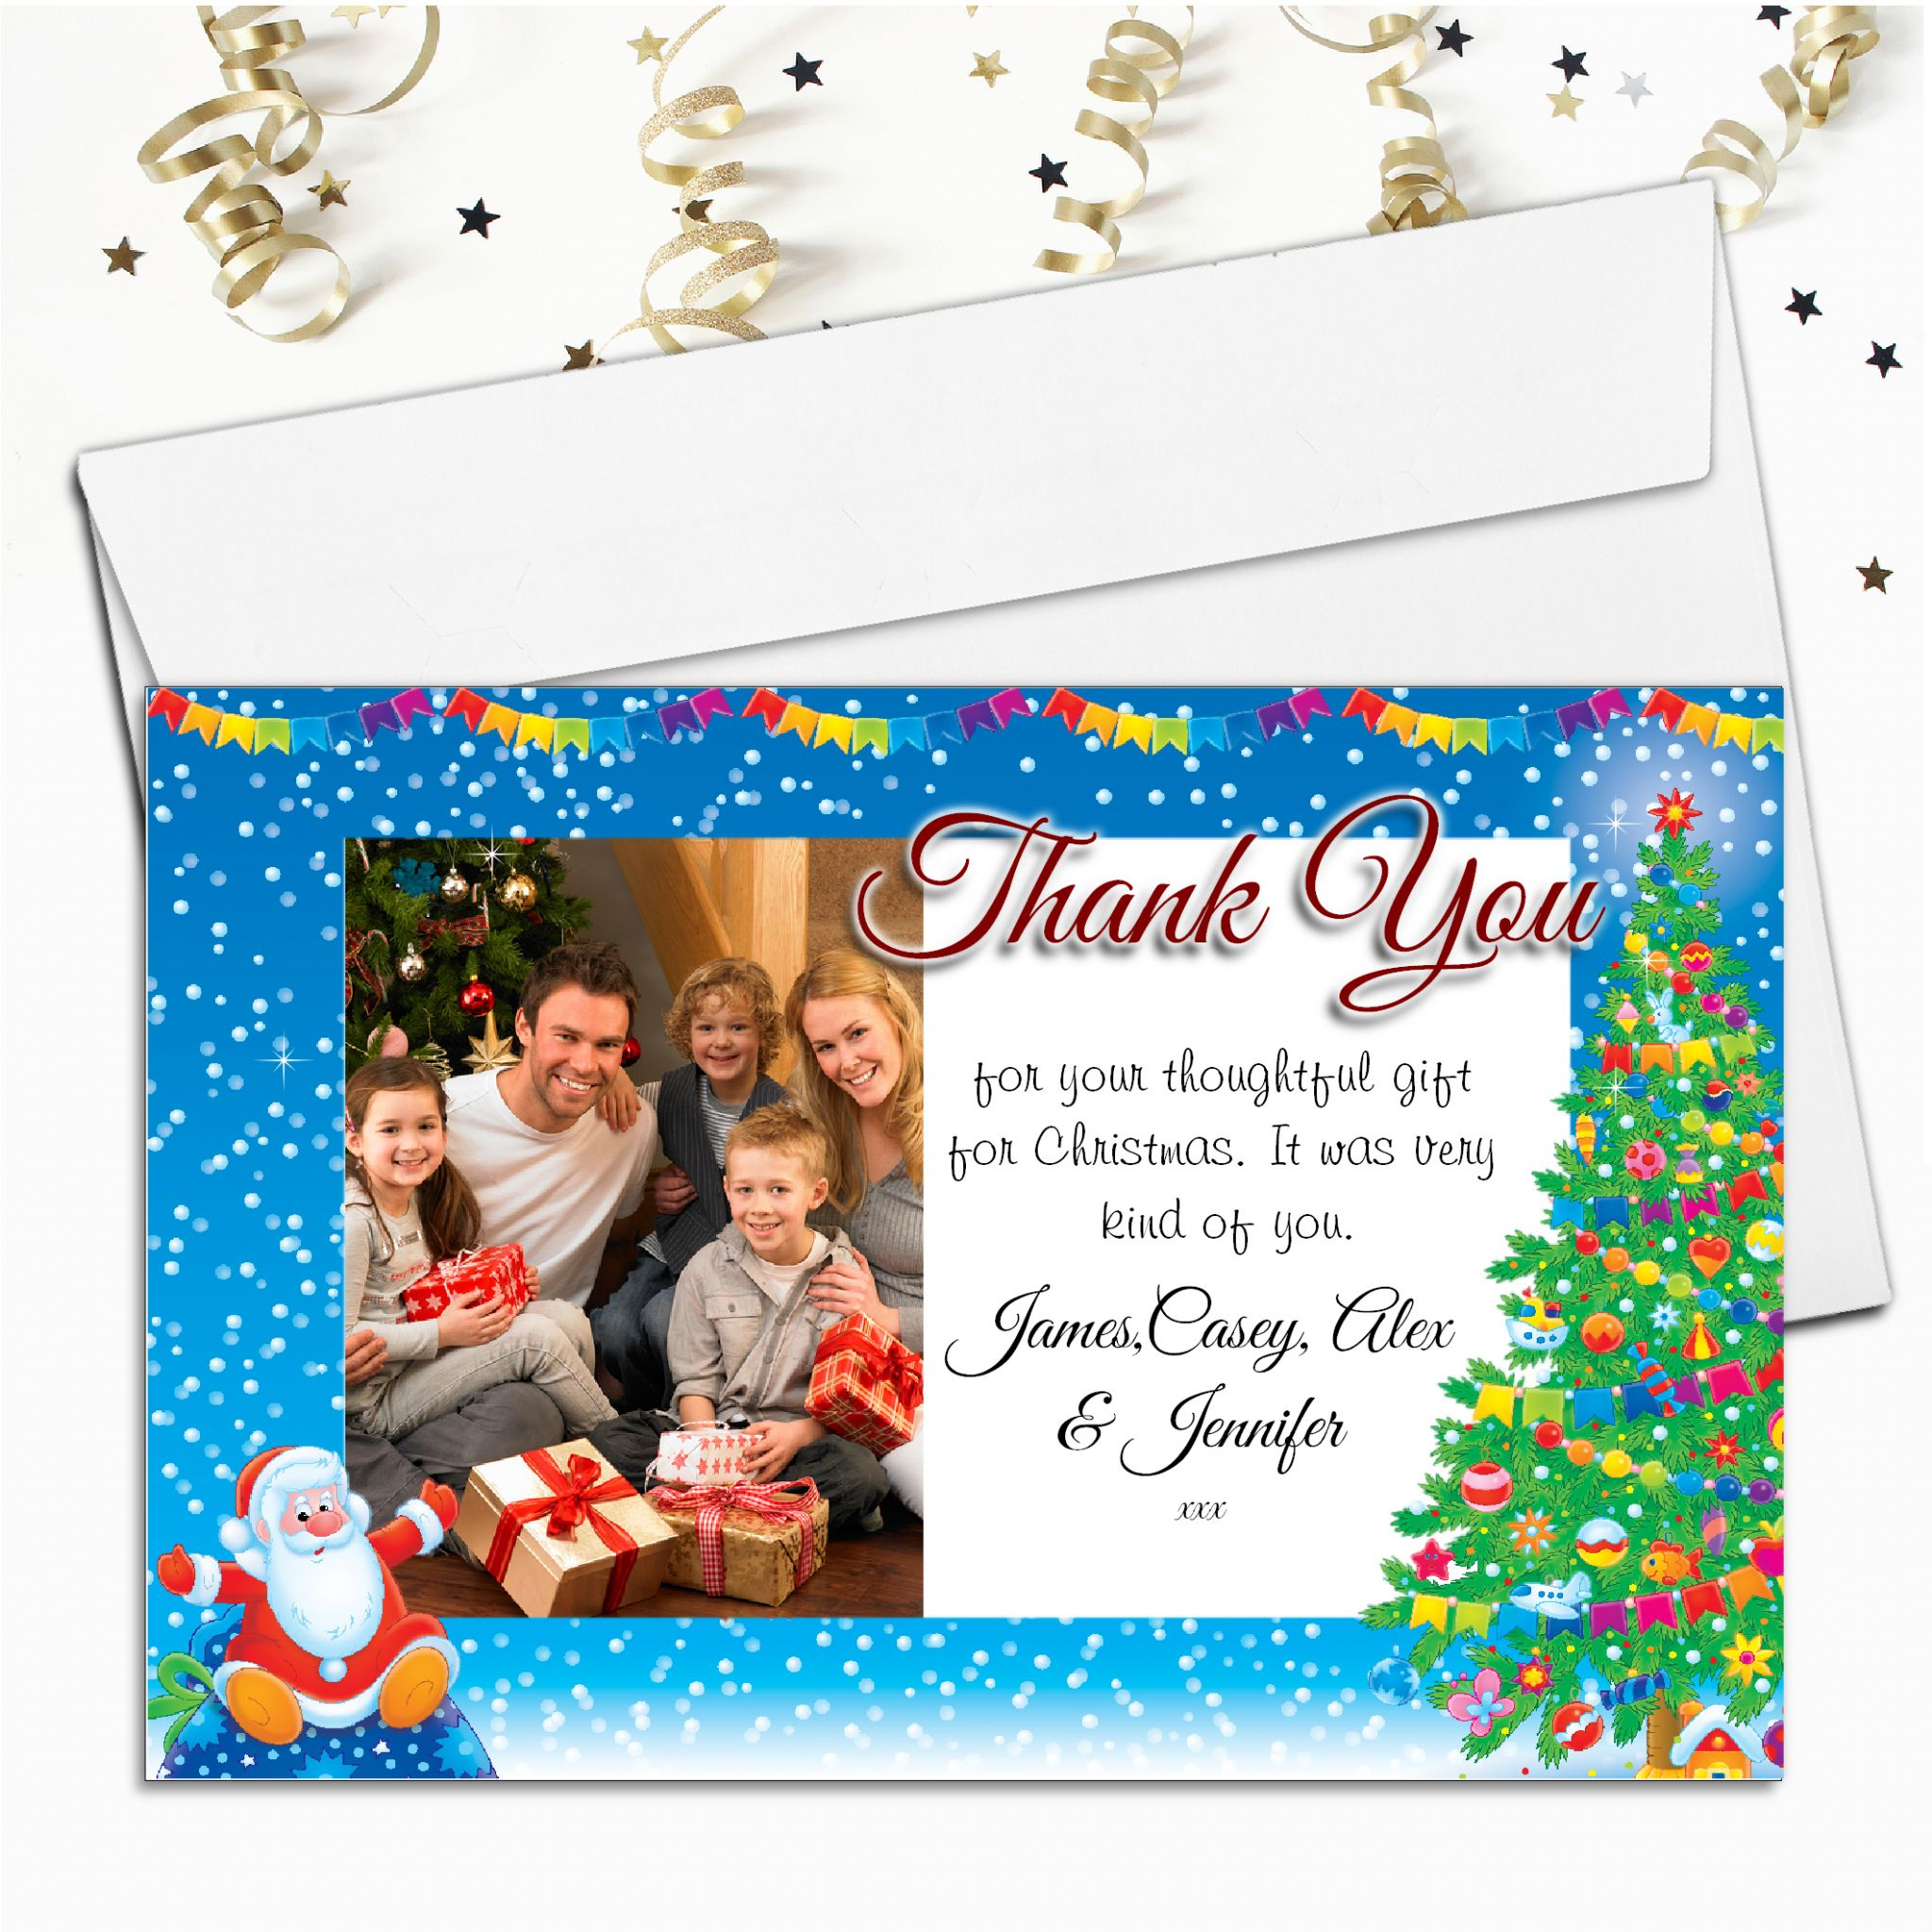 Christmas Thank You Cards.10 Personalised Christmas Thank You Cards Santa Photo Frame N23